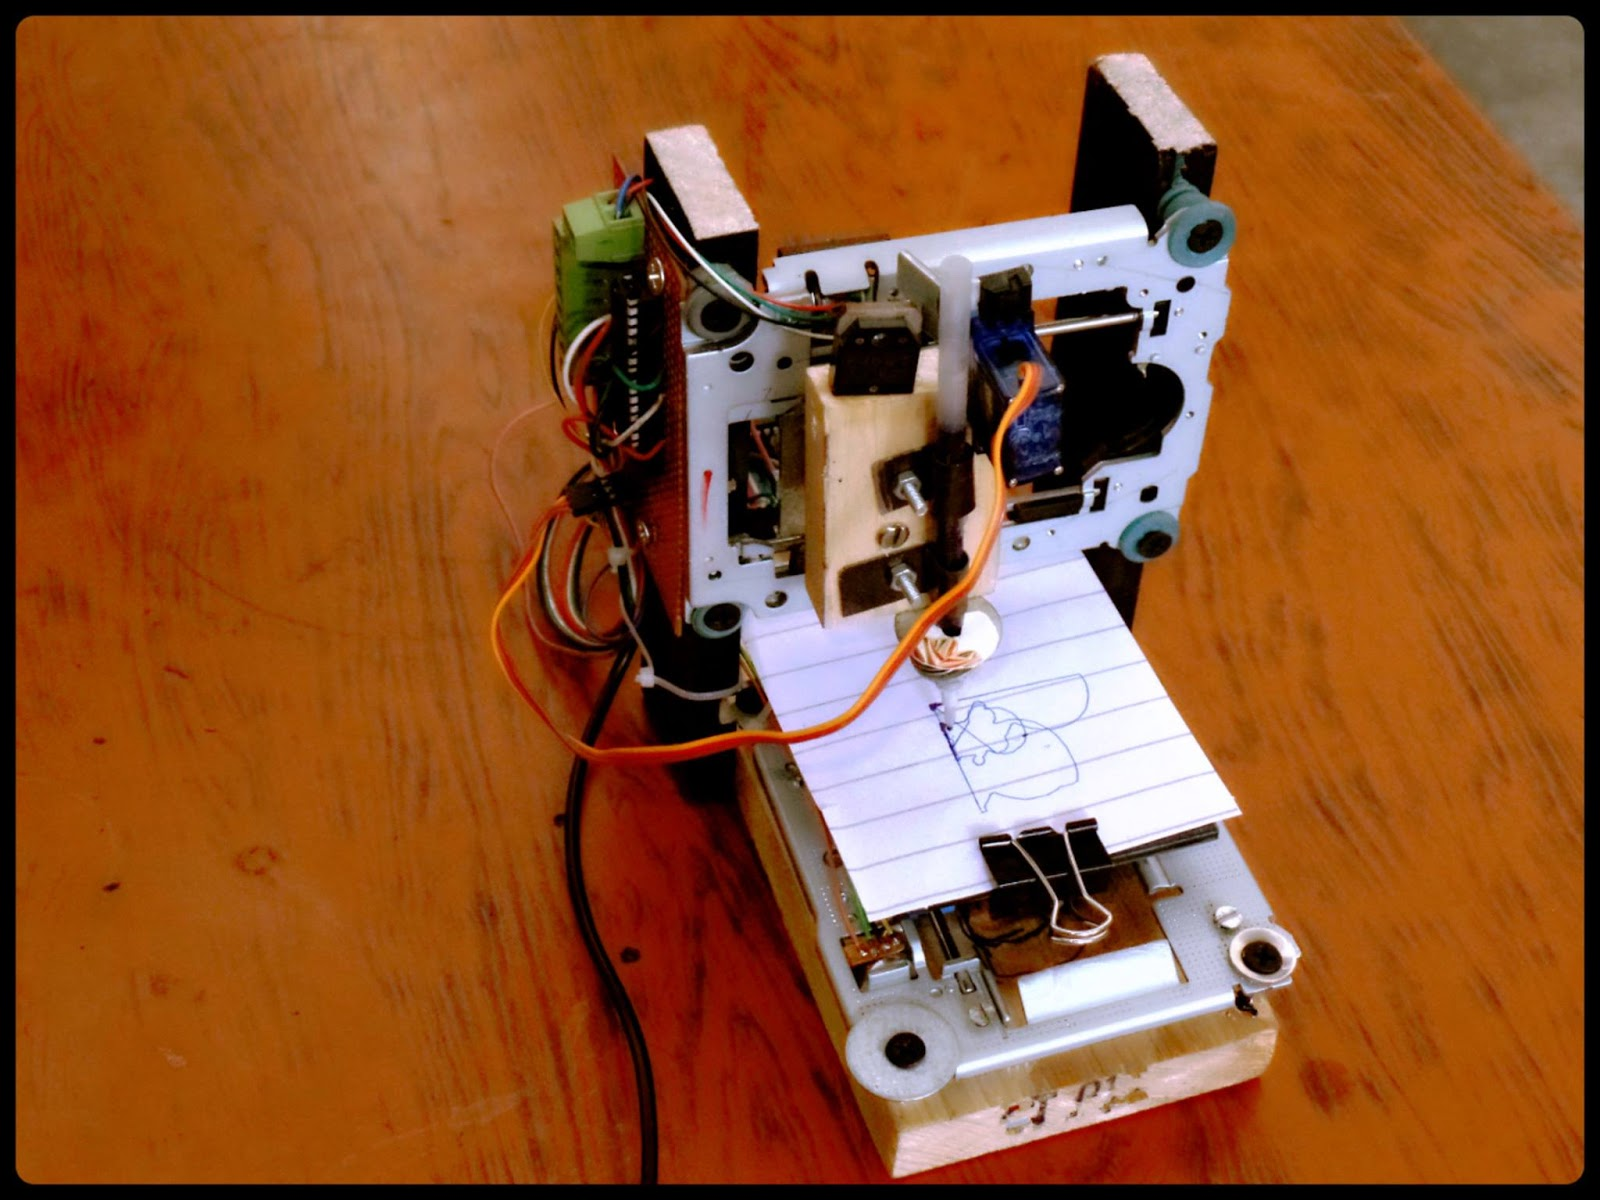 Sam Technology Professionals: Mini CNC XY plotter Prototype (Project